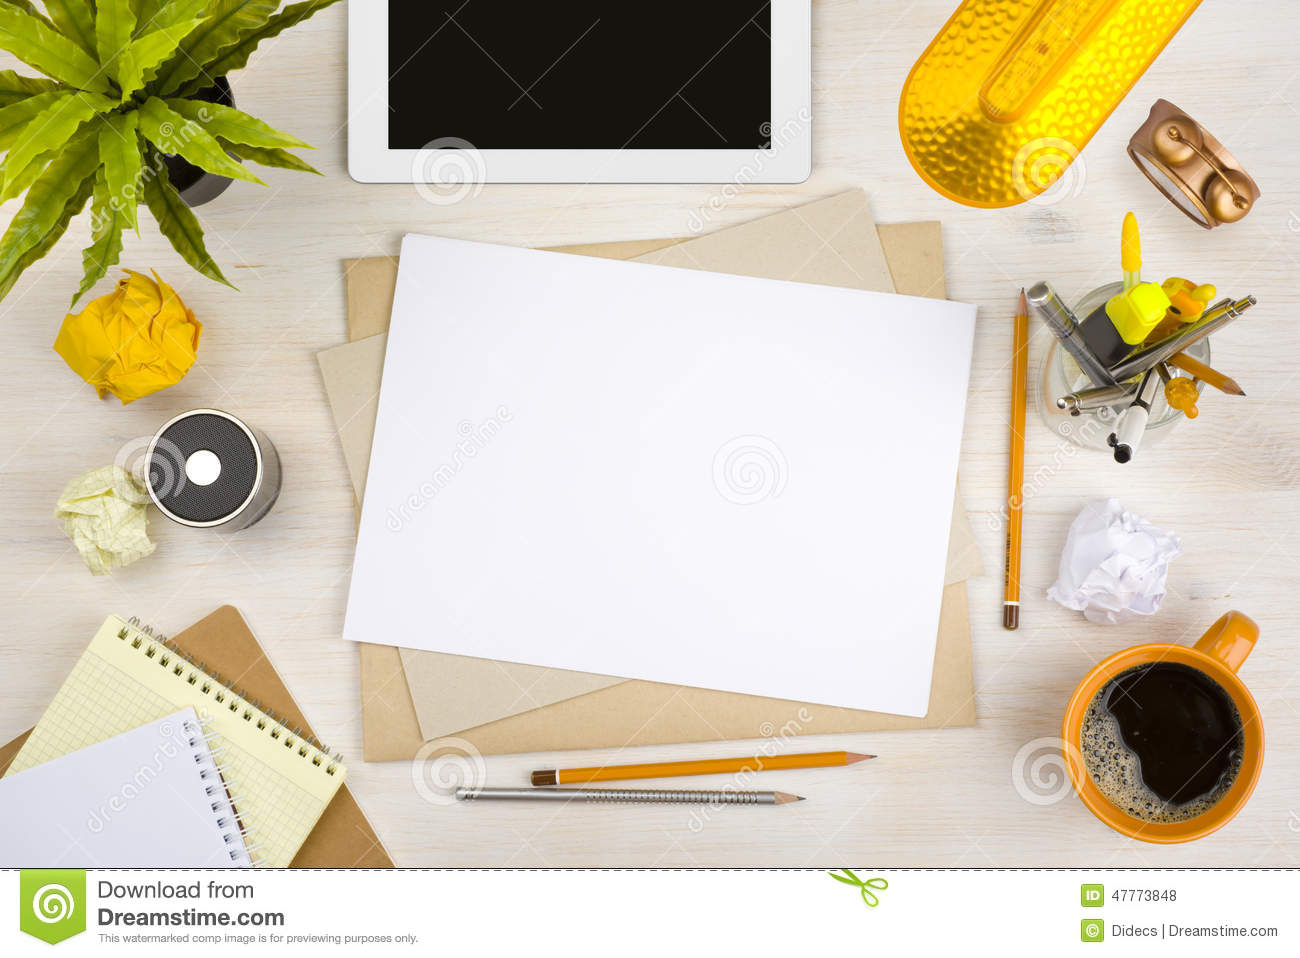 Top View Of Office Desk With Paper Stationery And Tablet Computer Stock Photo Image Of Copy Paperwork 47773848